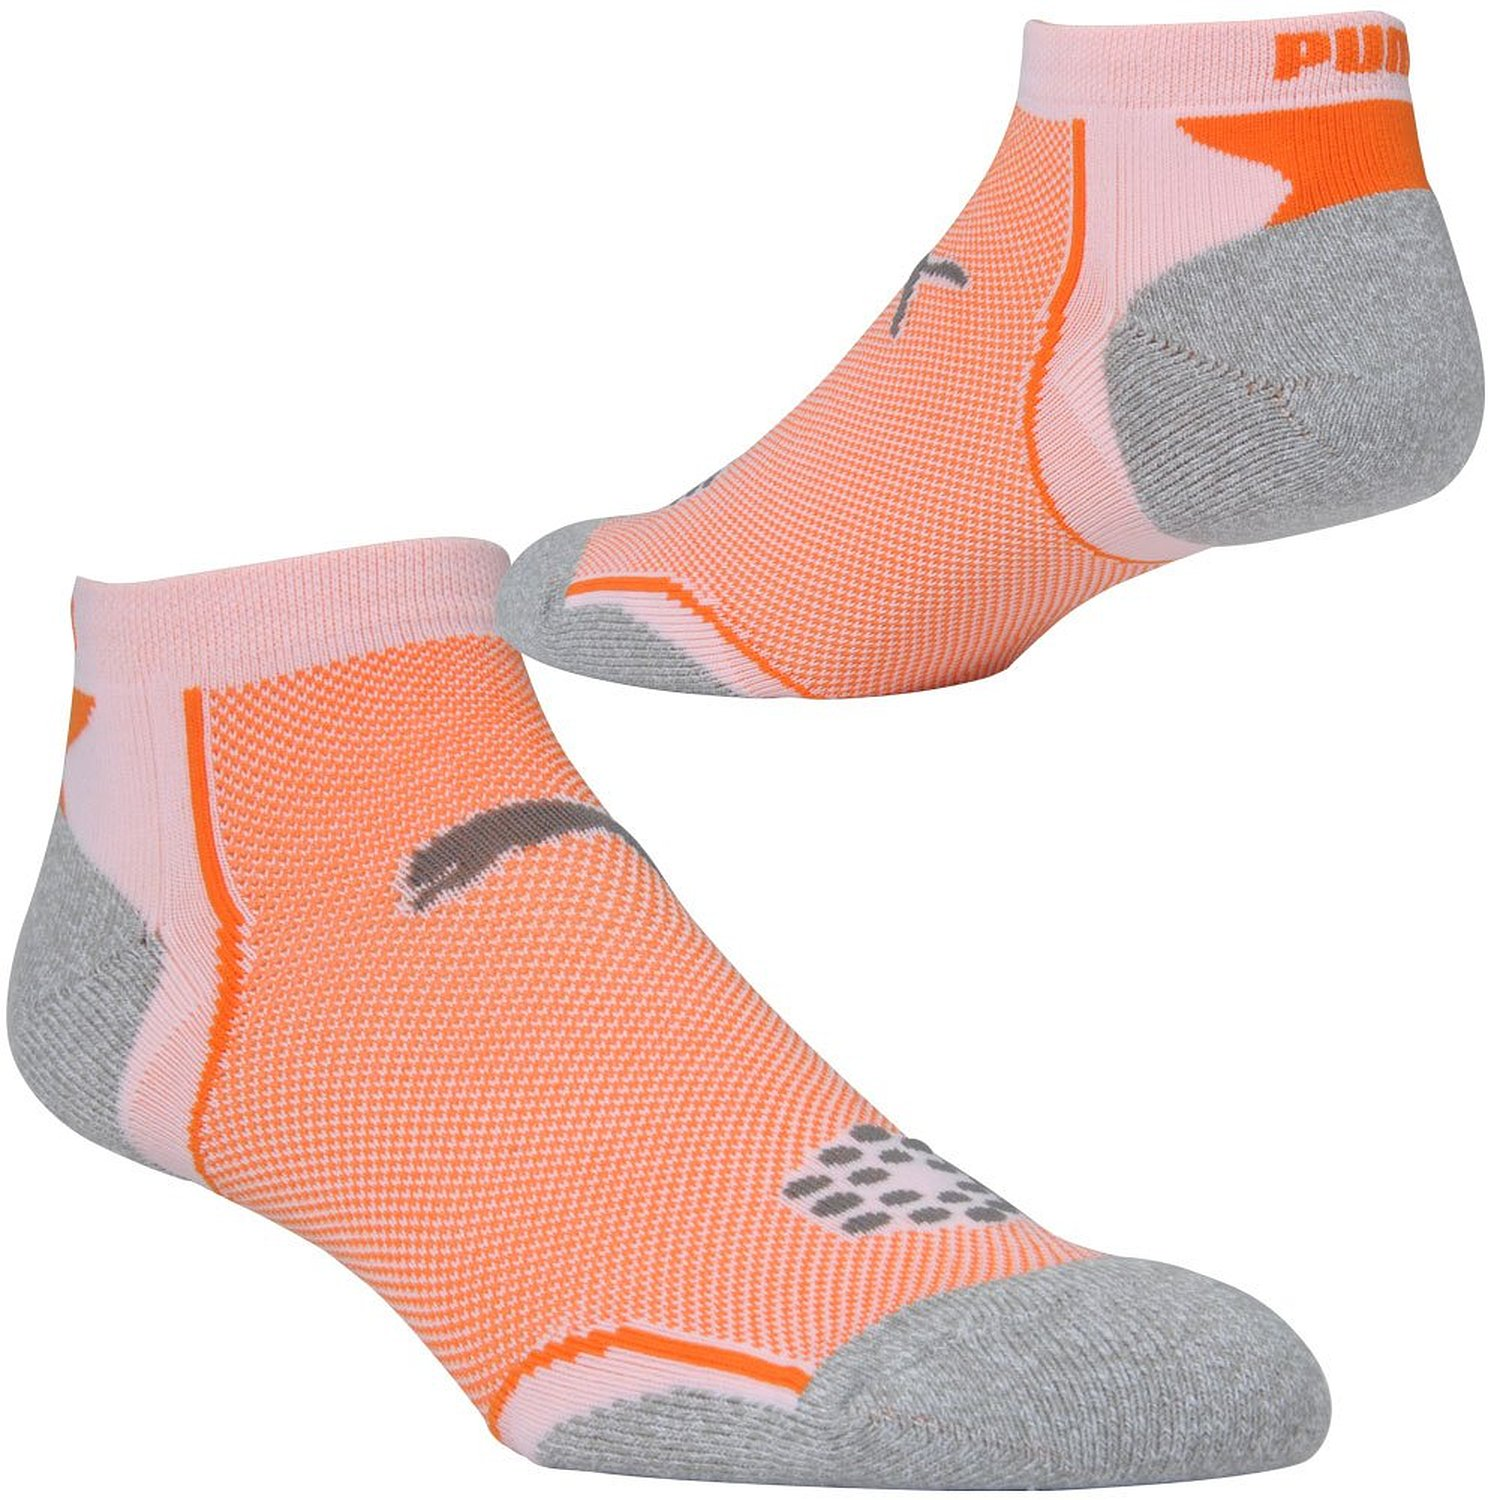 7aa414b73 Cheap Low Cut Mens Socks, find Low Cut Mens Socks deals on line at ...